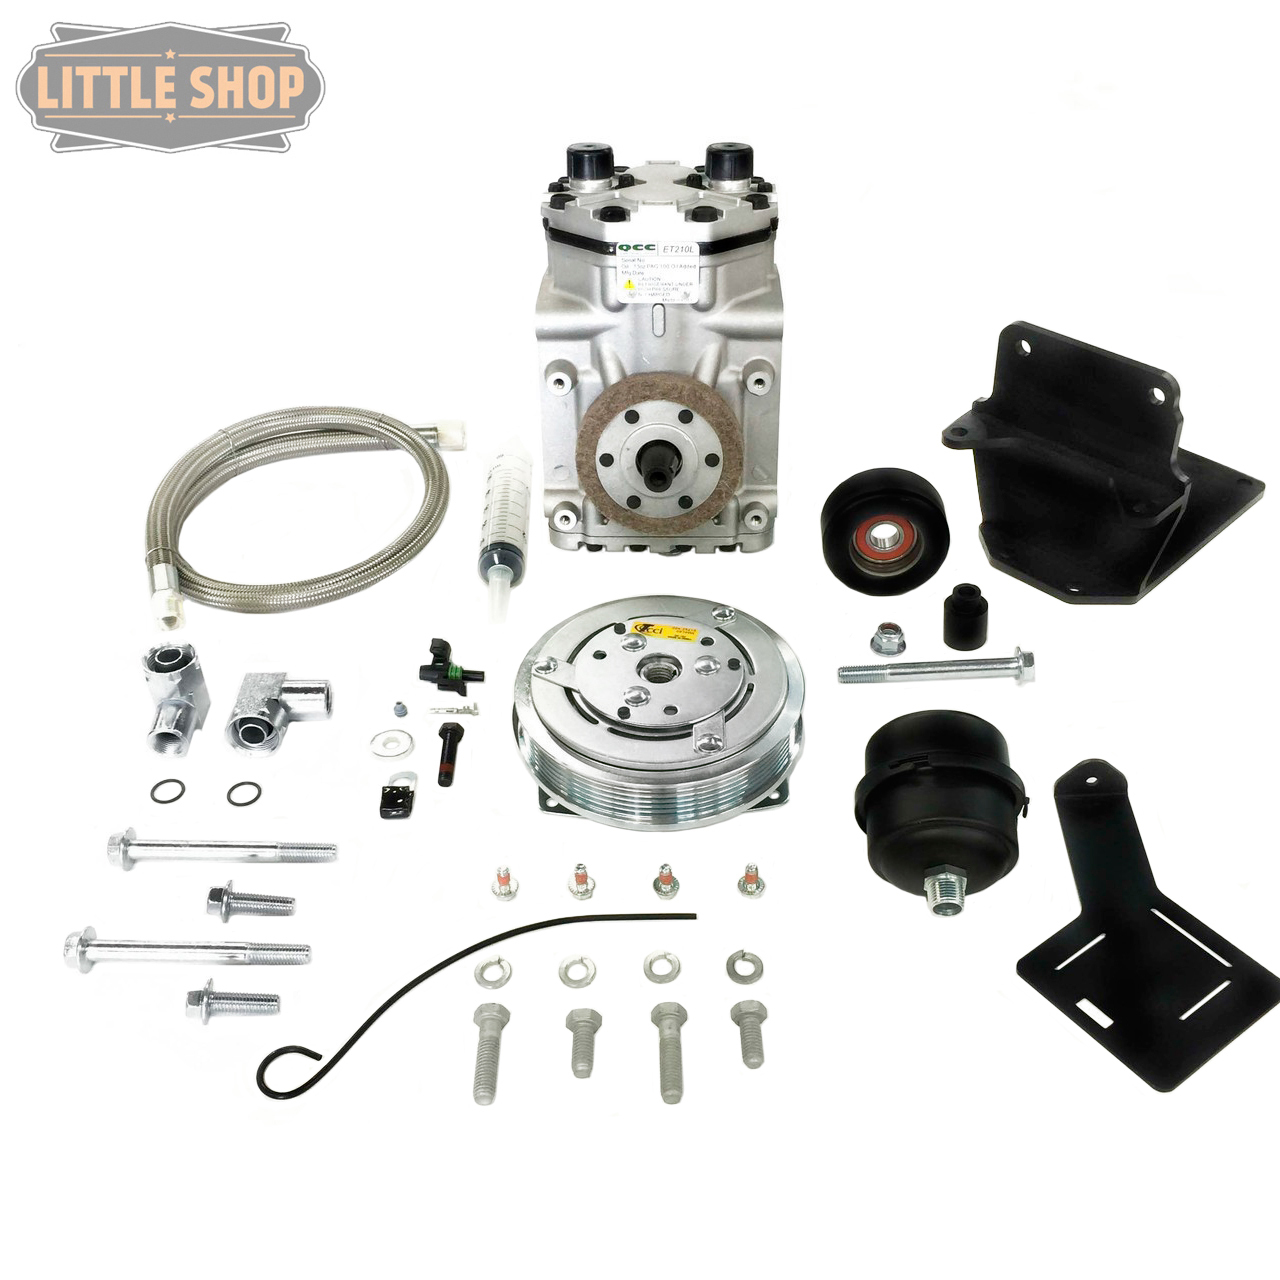 LSMFG-Diesel-EDC GM Duramax Engine Driven Compressor Kit** PLEASE INDICATE WHICH DIESEL YOU HAVE IN SHIPPING NOTES **